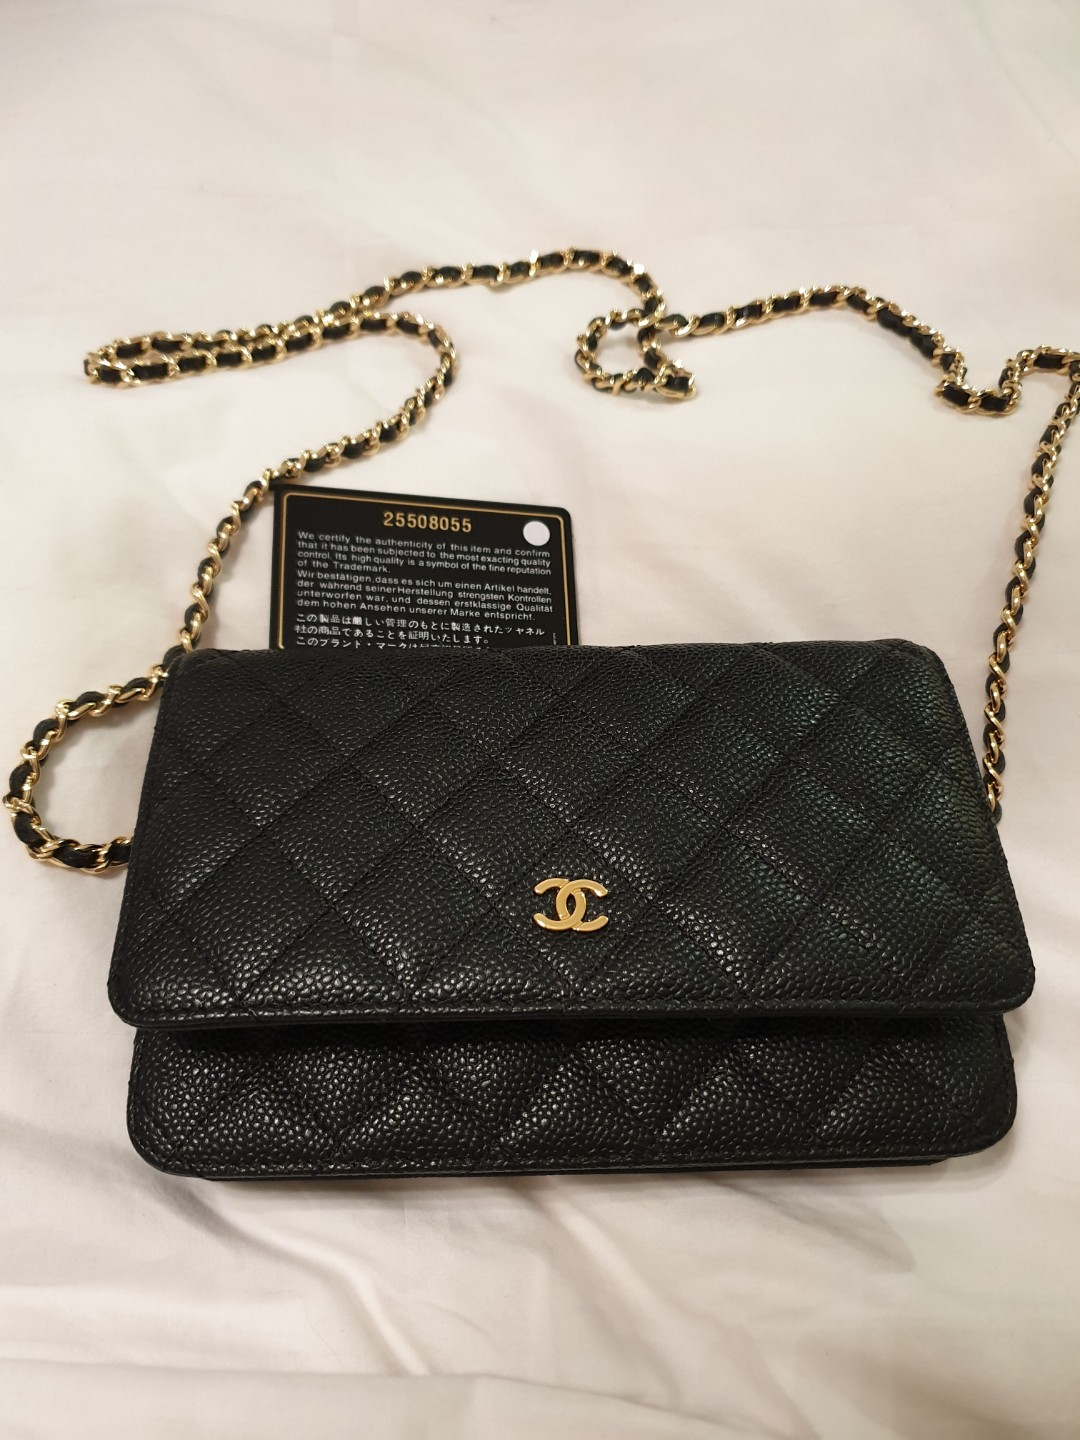 6986c83f7da7 Chanel WOC black caviar w gold hardware (Brand new), Luxury, Bags &  Wallets, Sling Bags on Carousell